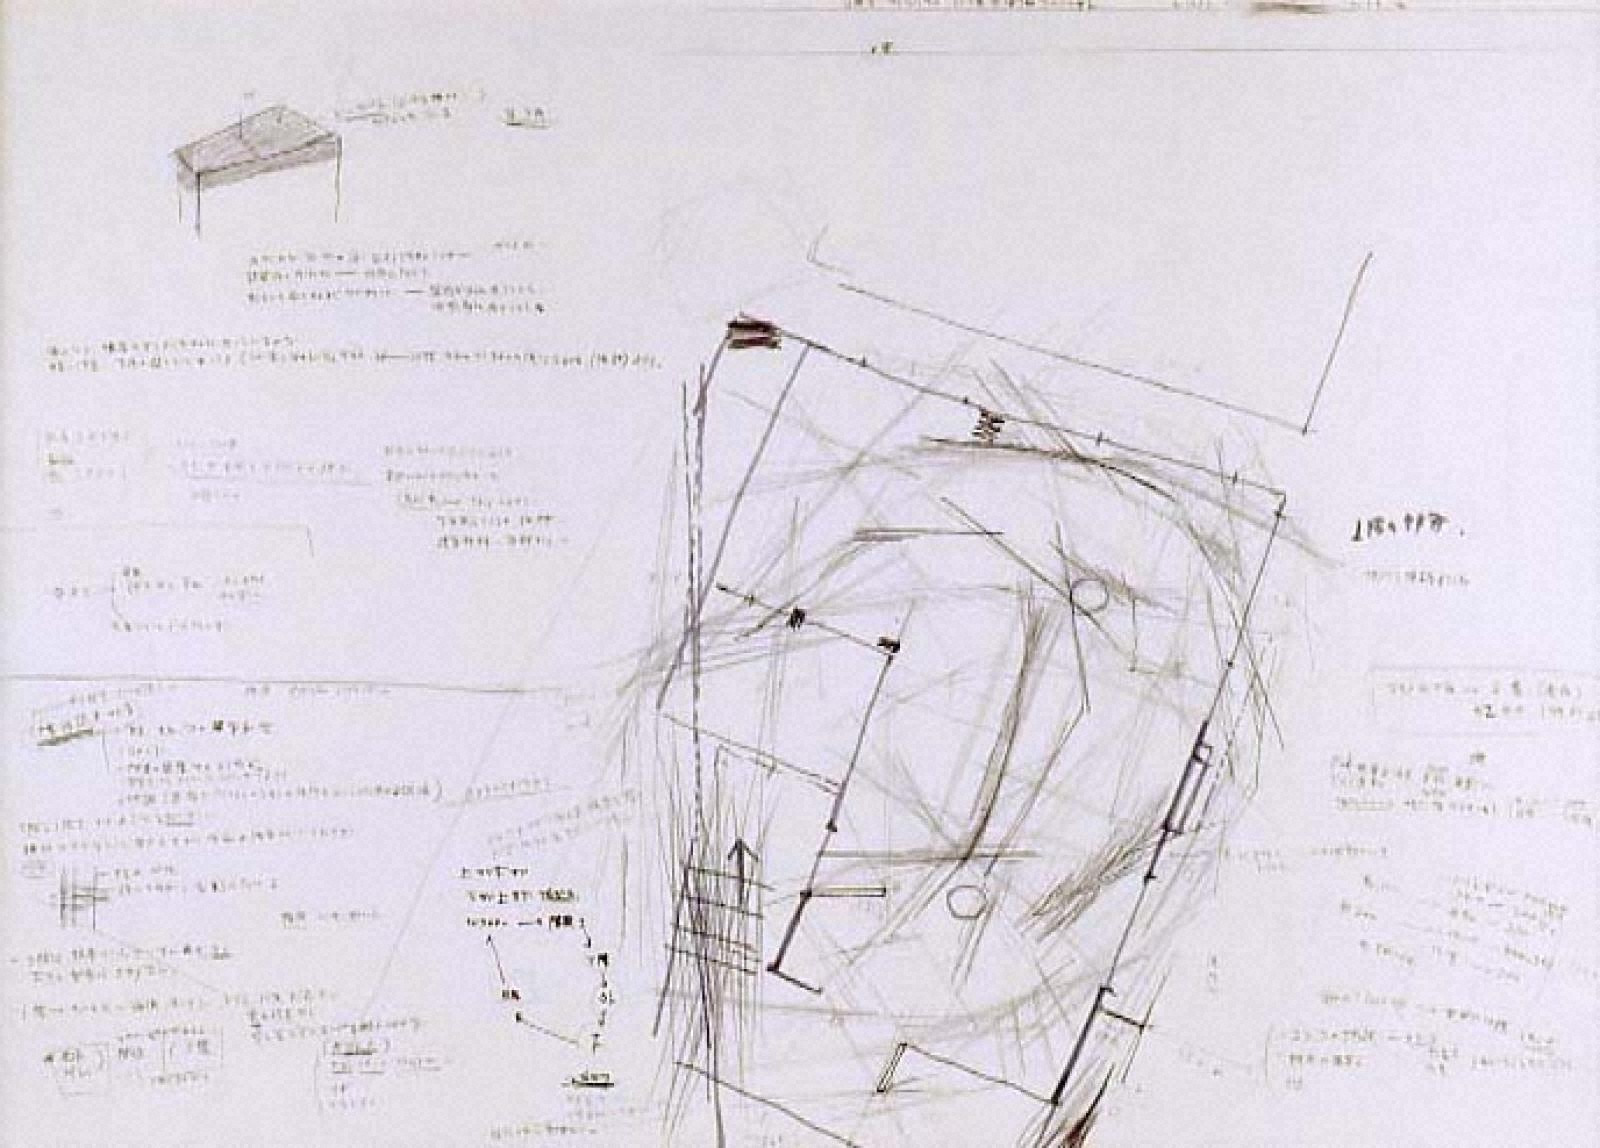 """PROJECT""""TETRA HOUSE N-3 W-26""""SAPPORO 1983 「Working Note 1」(ドローイング)"""